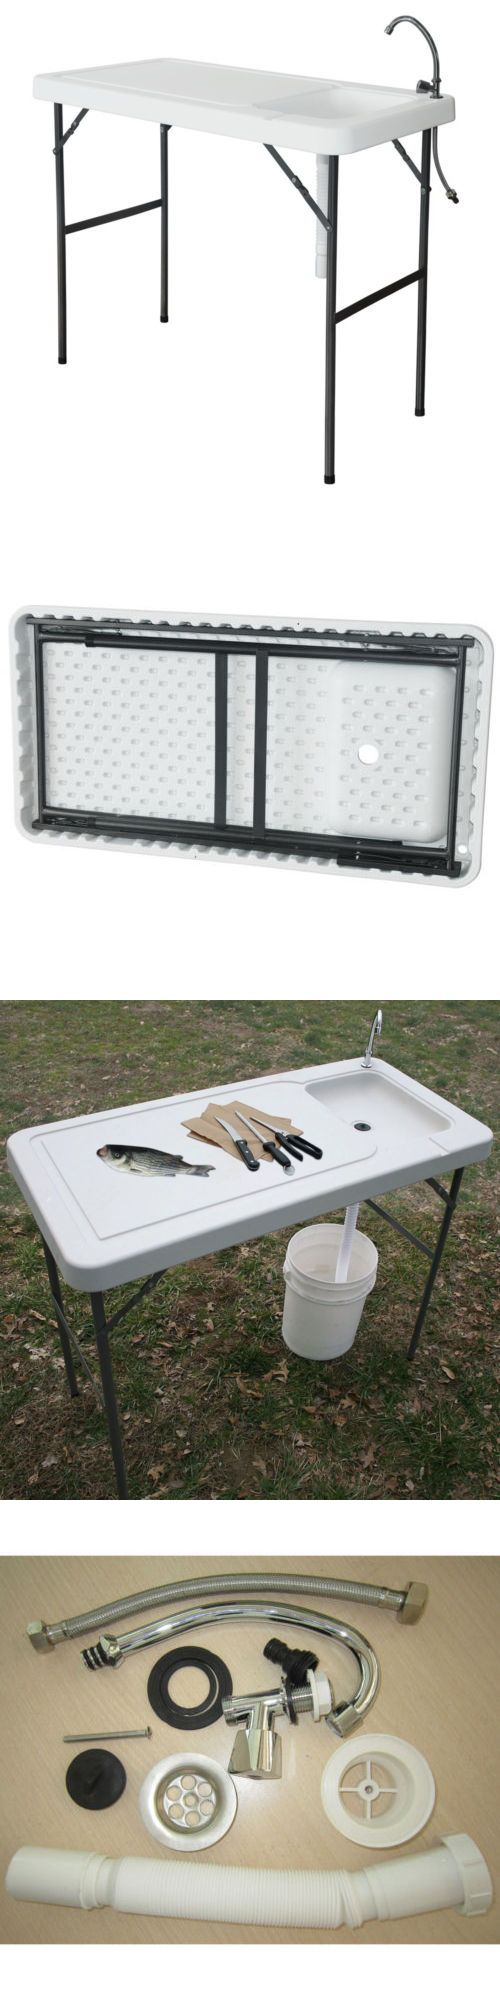 Fillet Tables And Cutting Boards 161823 Outdoor Fish Cleaning Camp Furniture W Faucet Board Table Portable Hdpe It Now Only 54 99 On Ebay